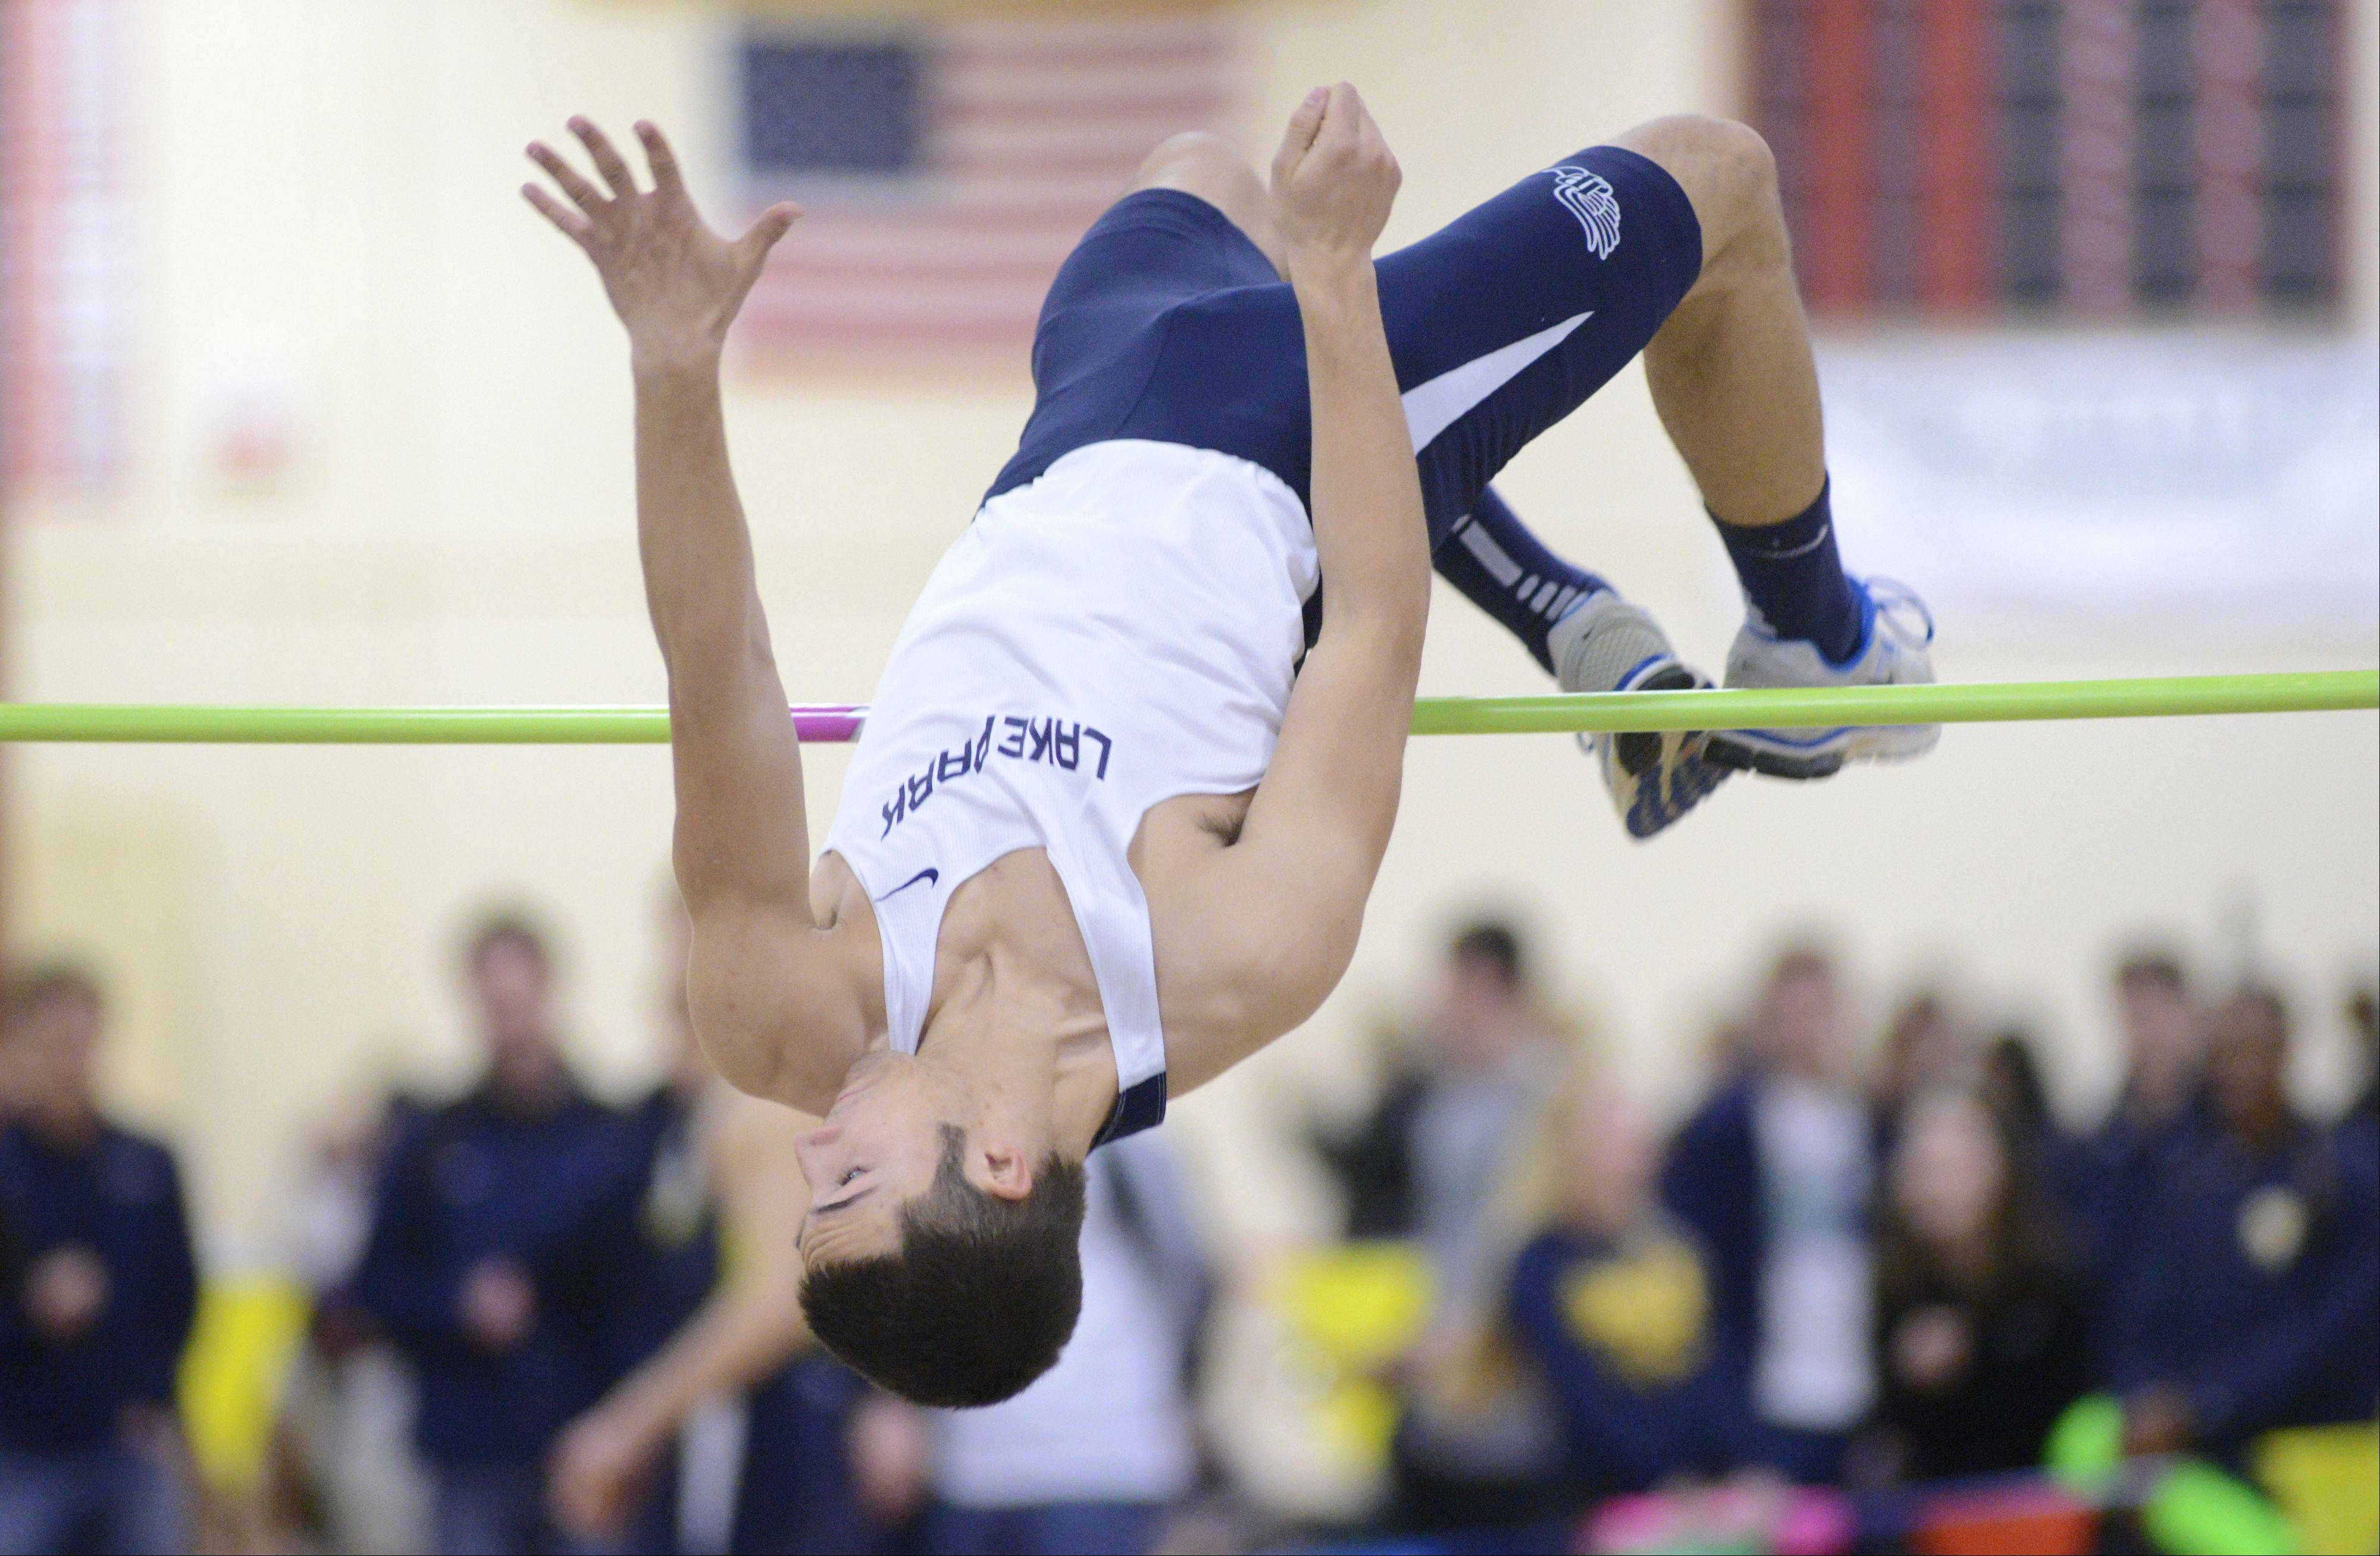 Lake Park's Scott Filip in the high jump finals at the Upstate Eight Conference in Batavia on Saturday, March 16.